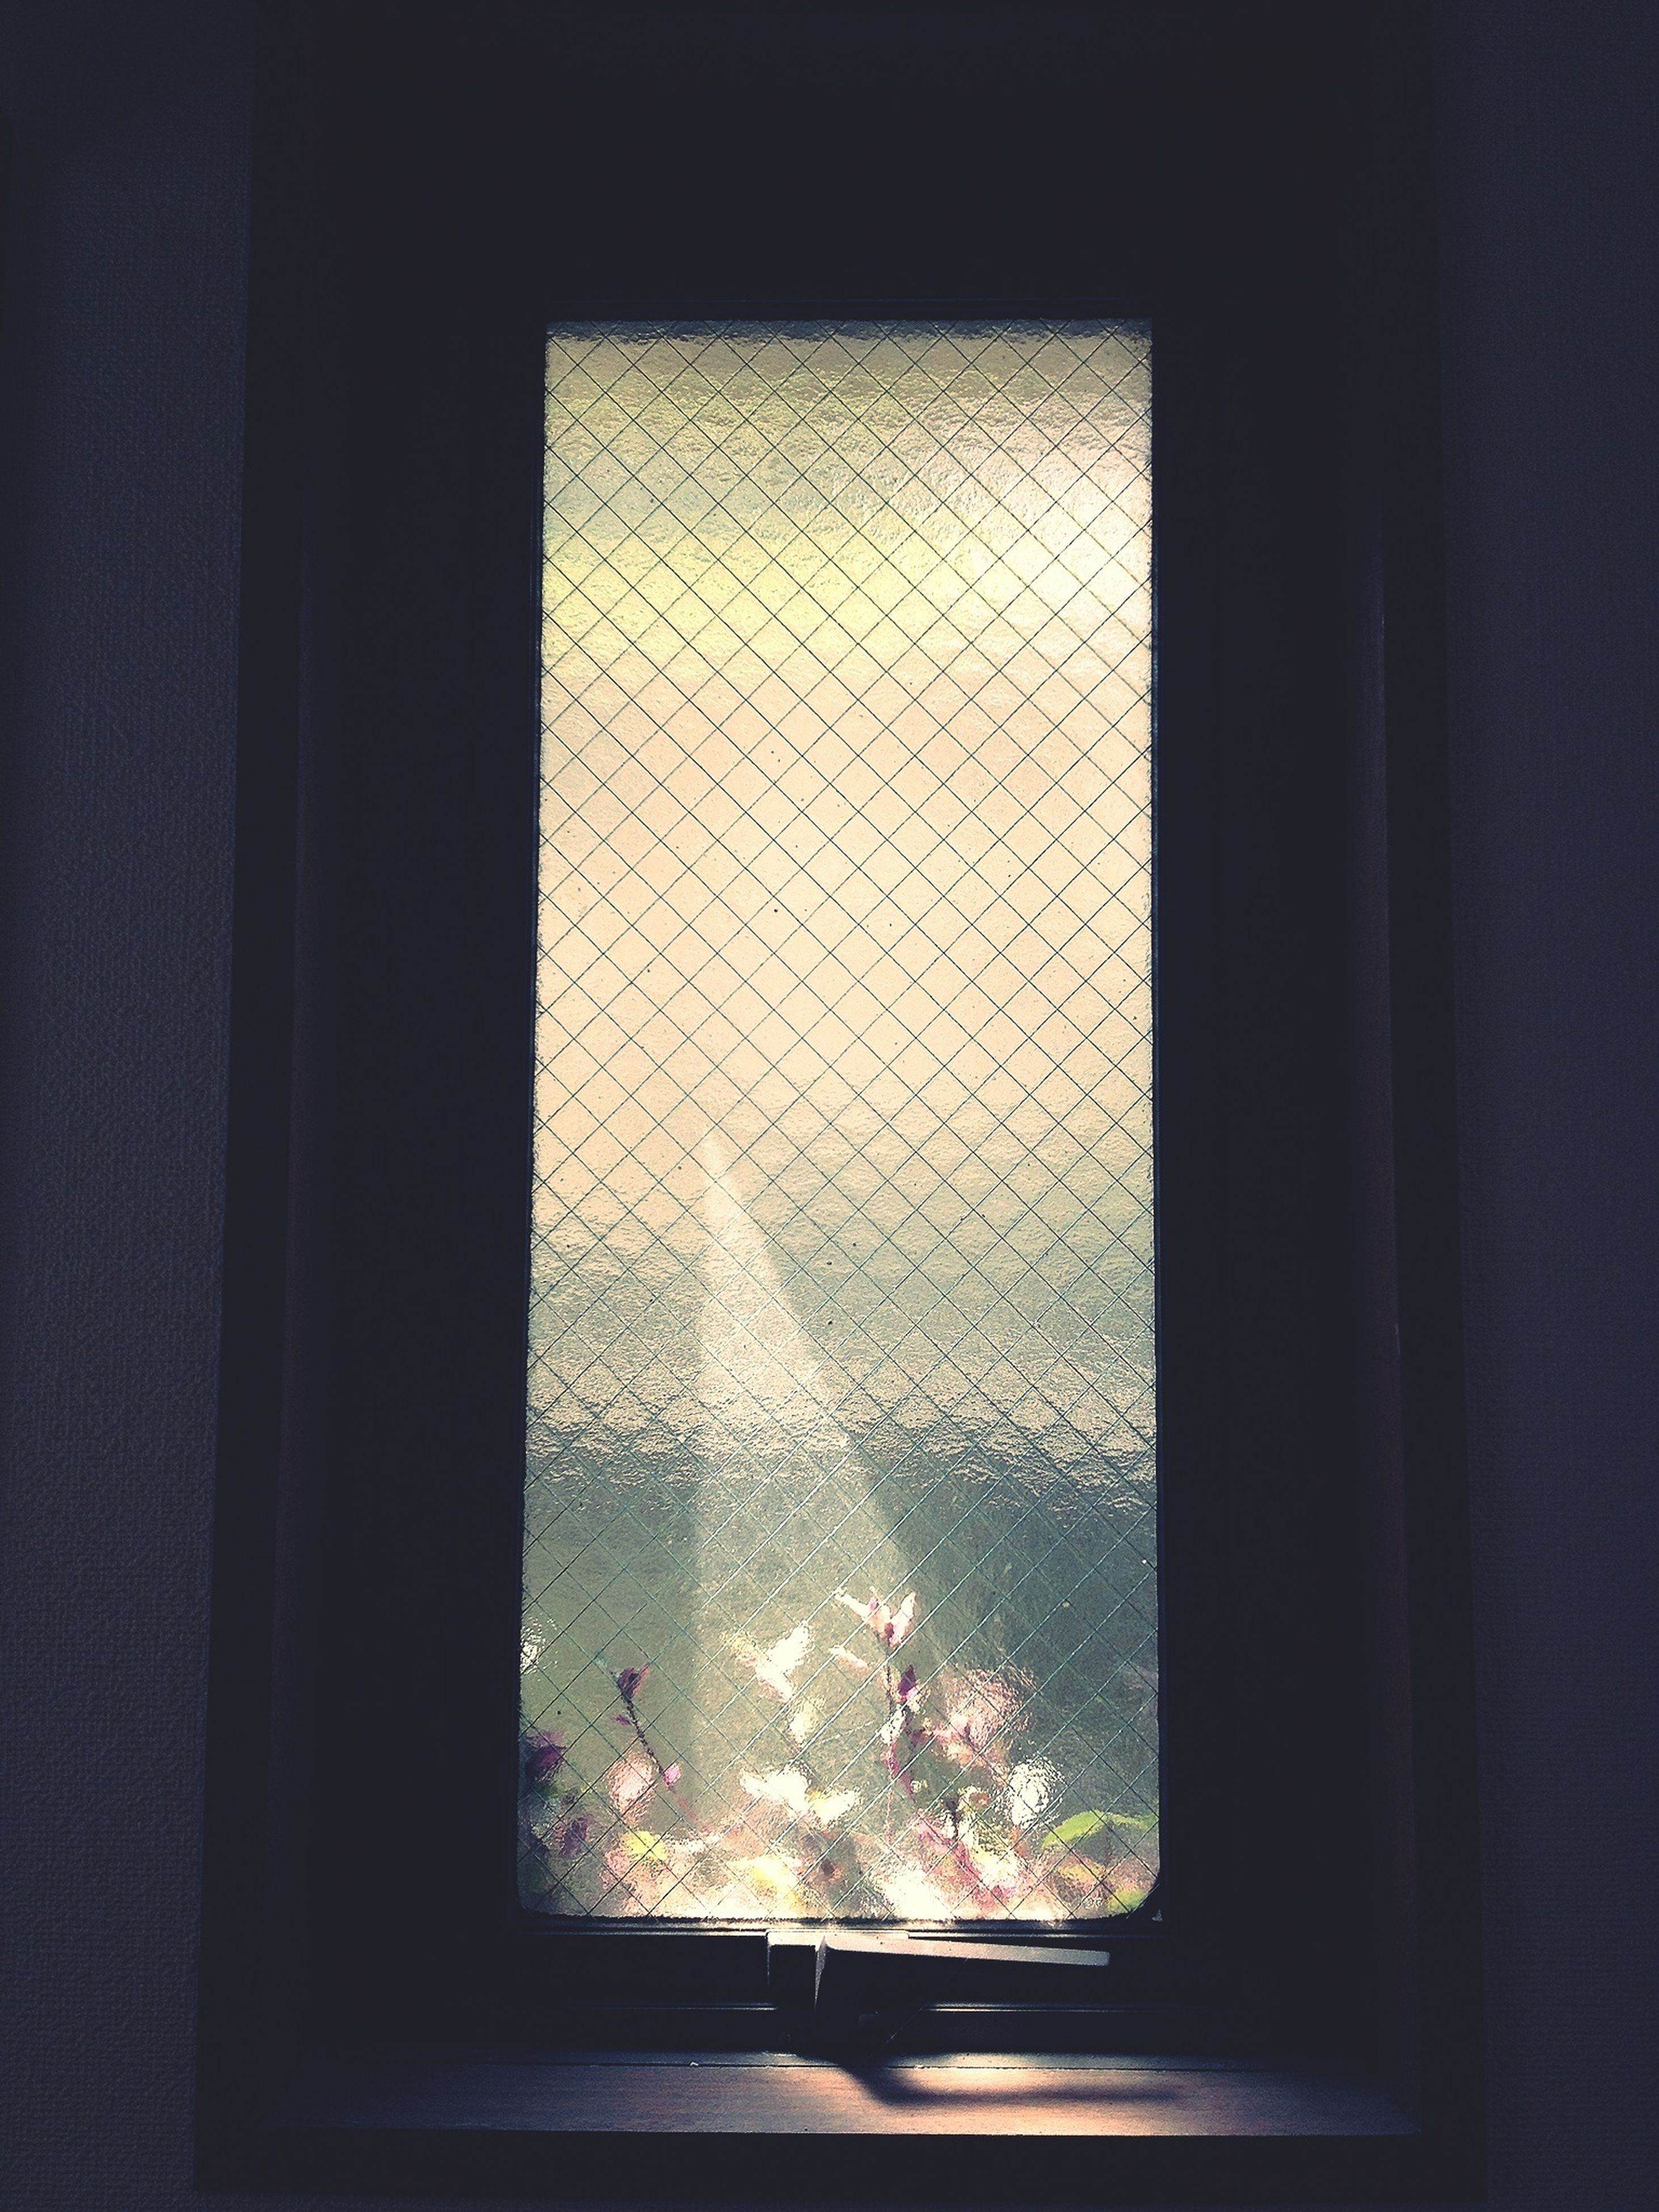 indoors, window, glass - material, transparent, curtain, glass, home interior, close-up, looking through window, dark, water, no people, window sill, reflection, day, sky, window frame, house, drop, sunlight